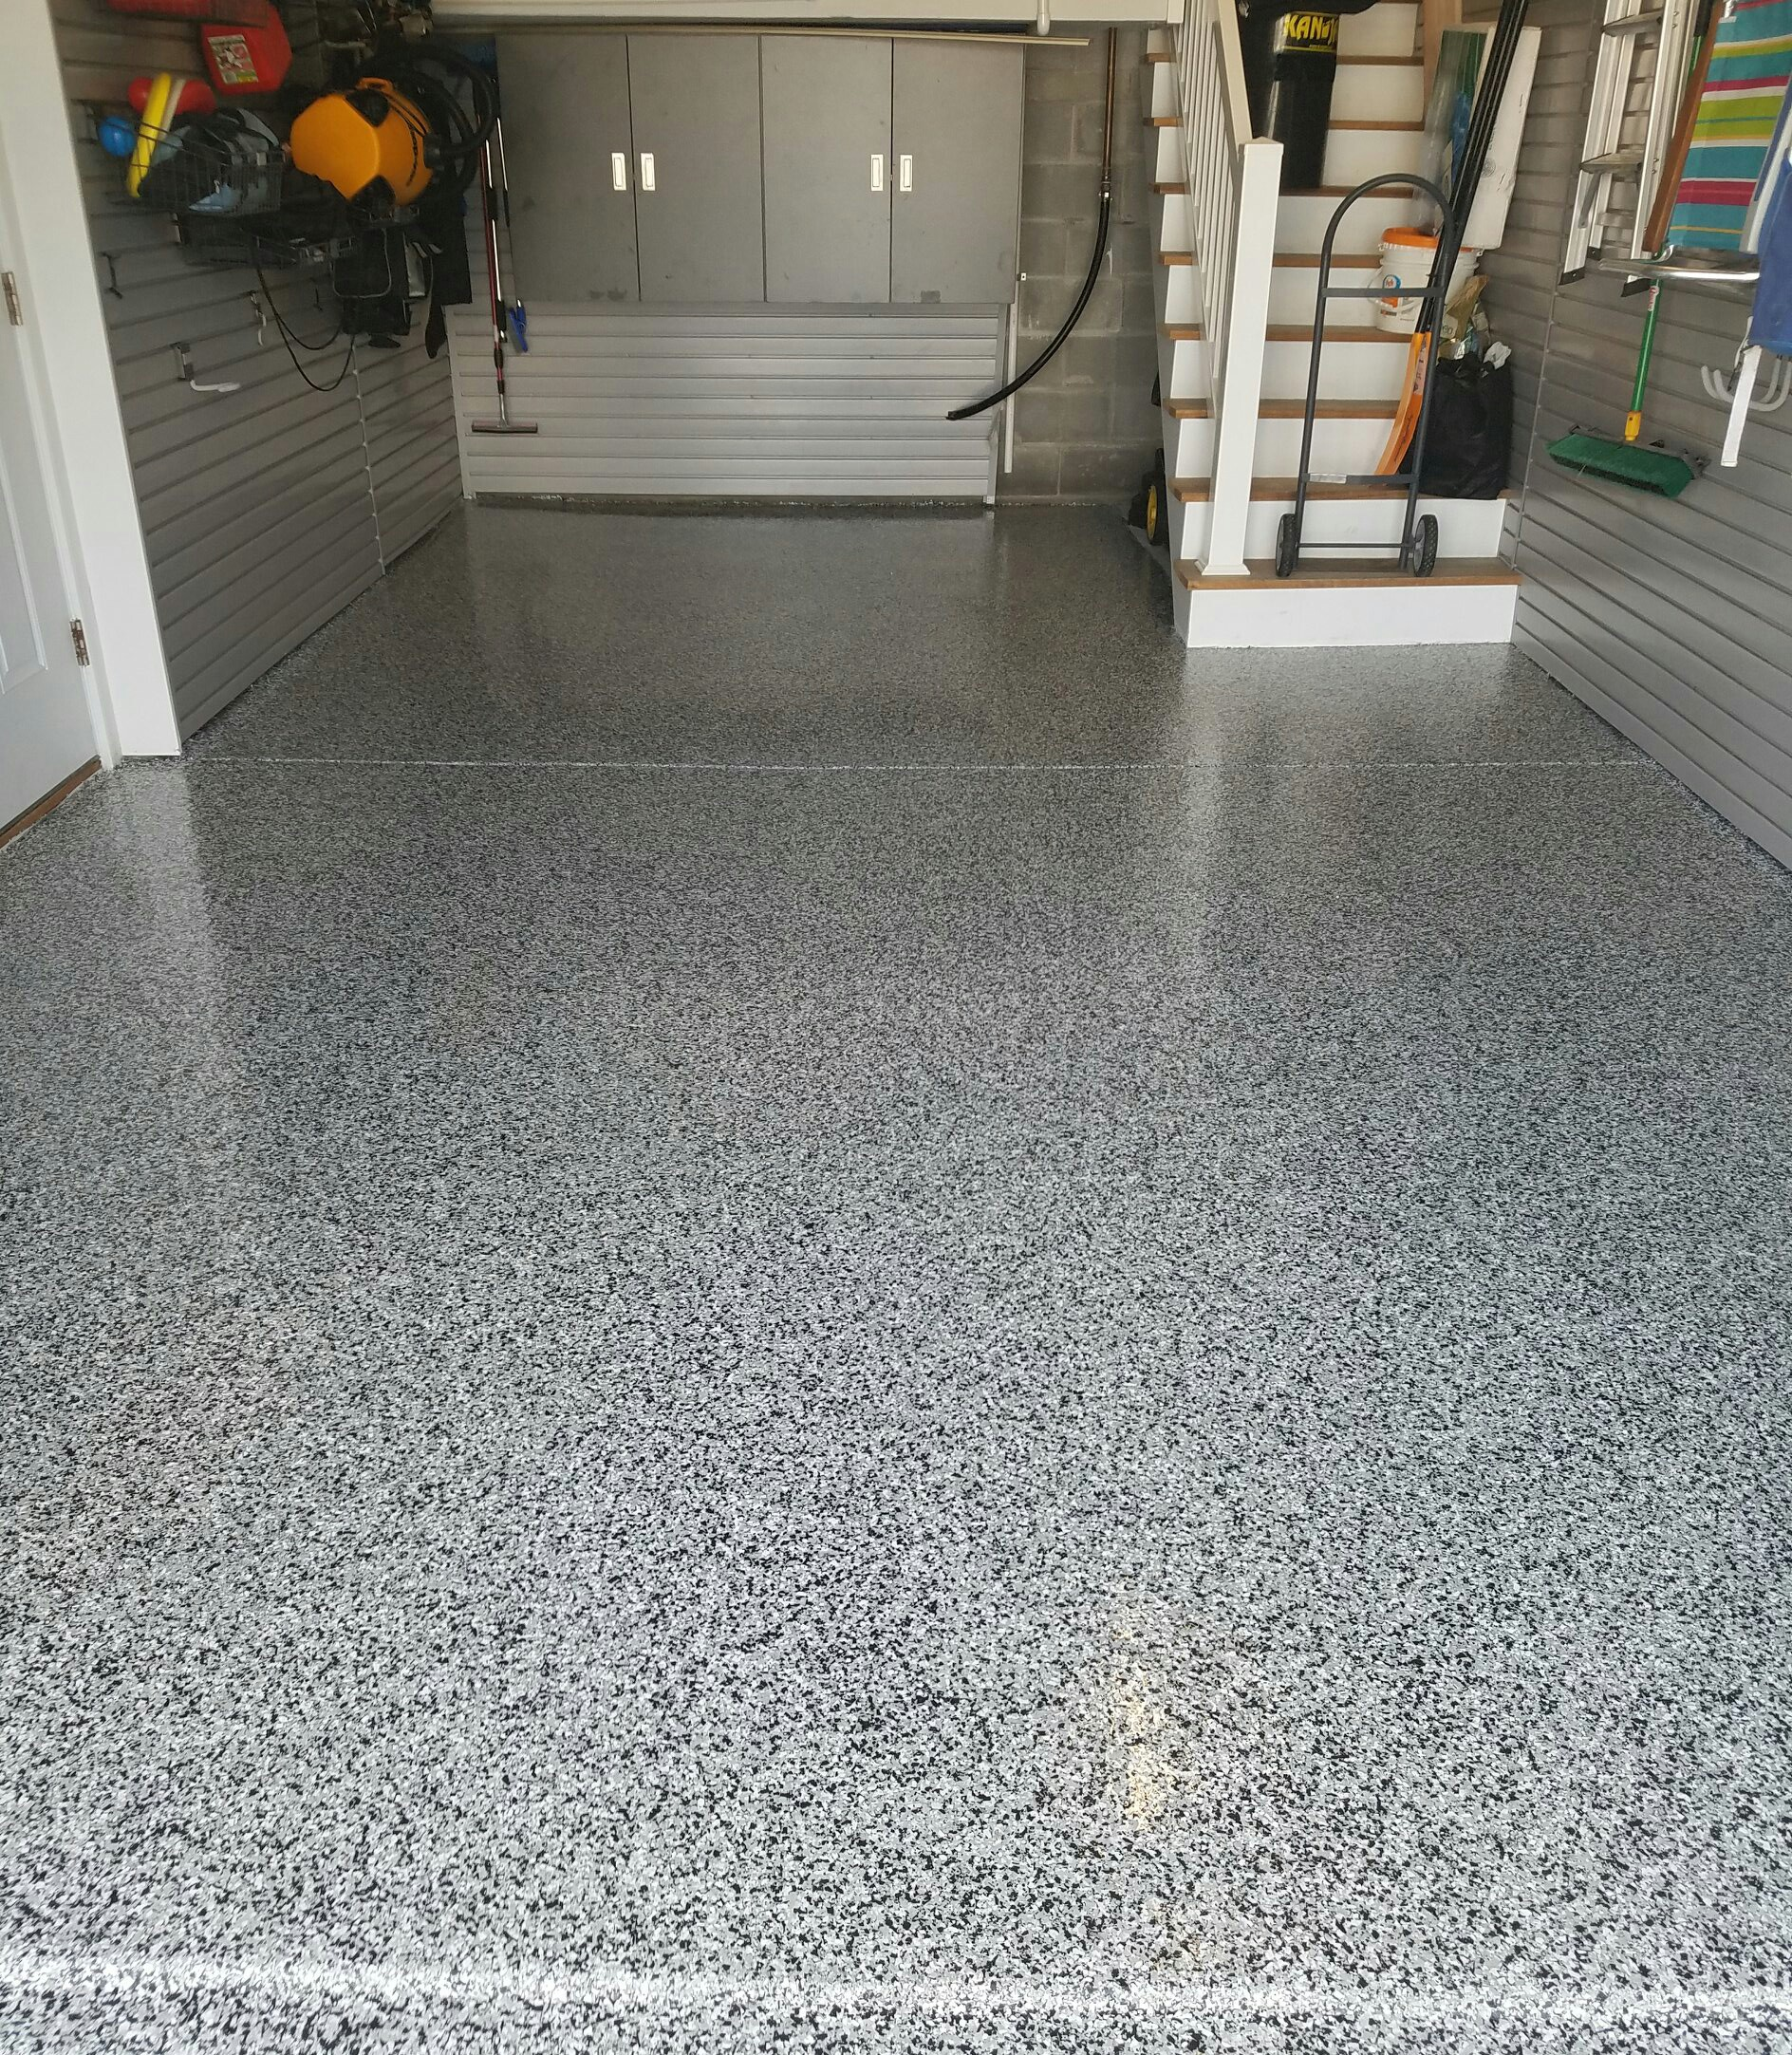 Epoxy Garage Flooe - Philadelphia Concrete Floor on how to paint, how to coat rock floor, how to stain garage floor, how to coat garage floor, epoxy concrete floor, how to carpet garage floor,